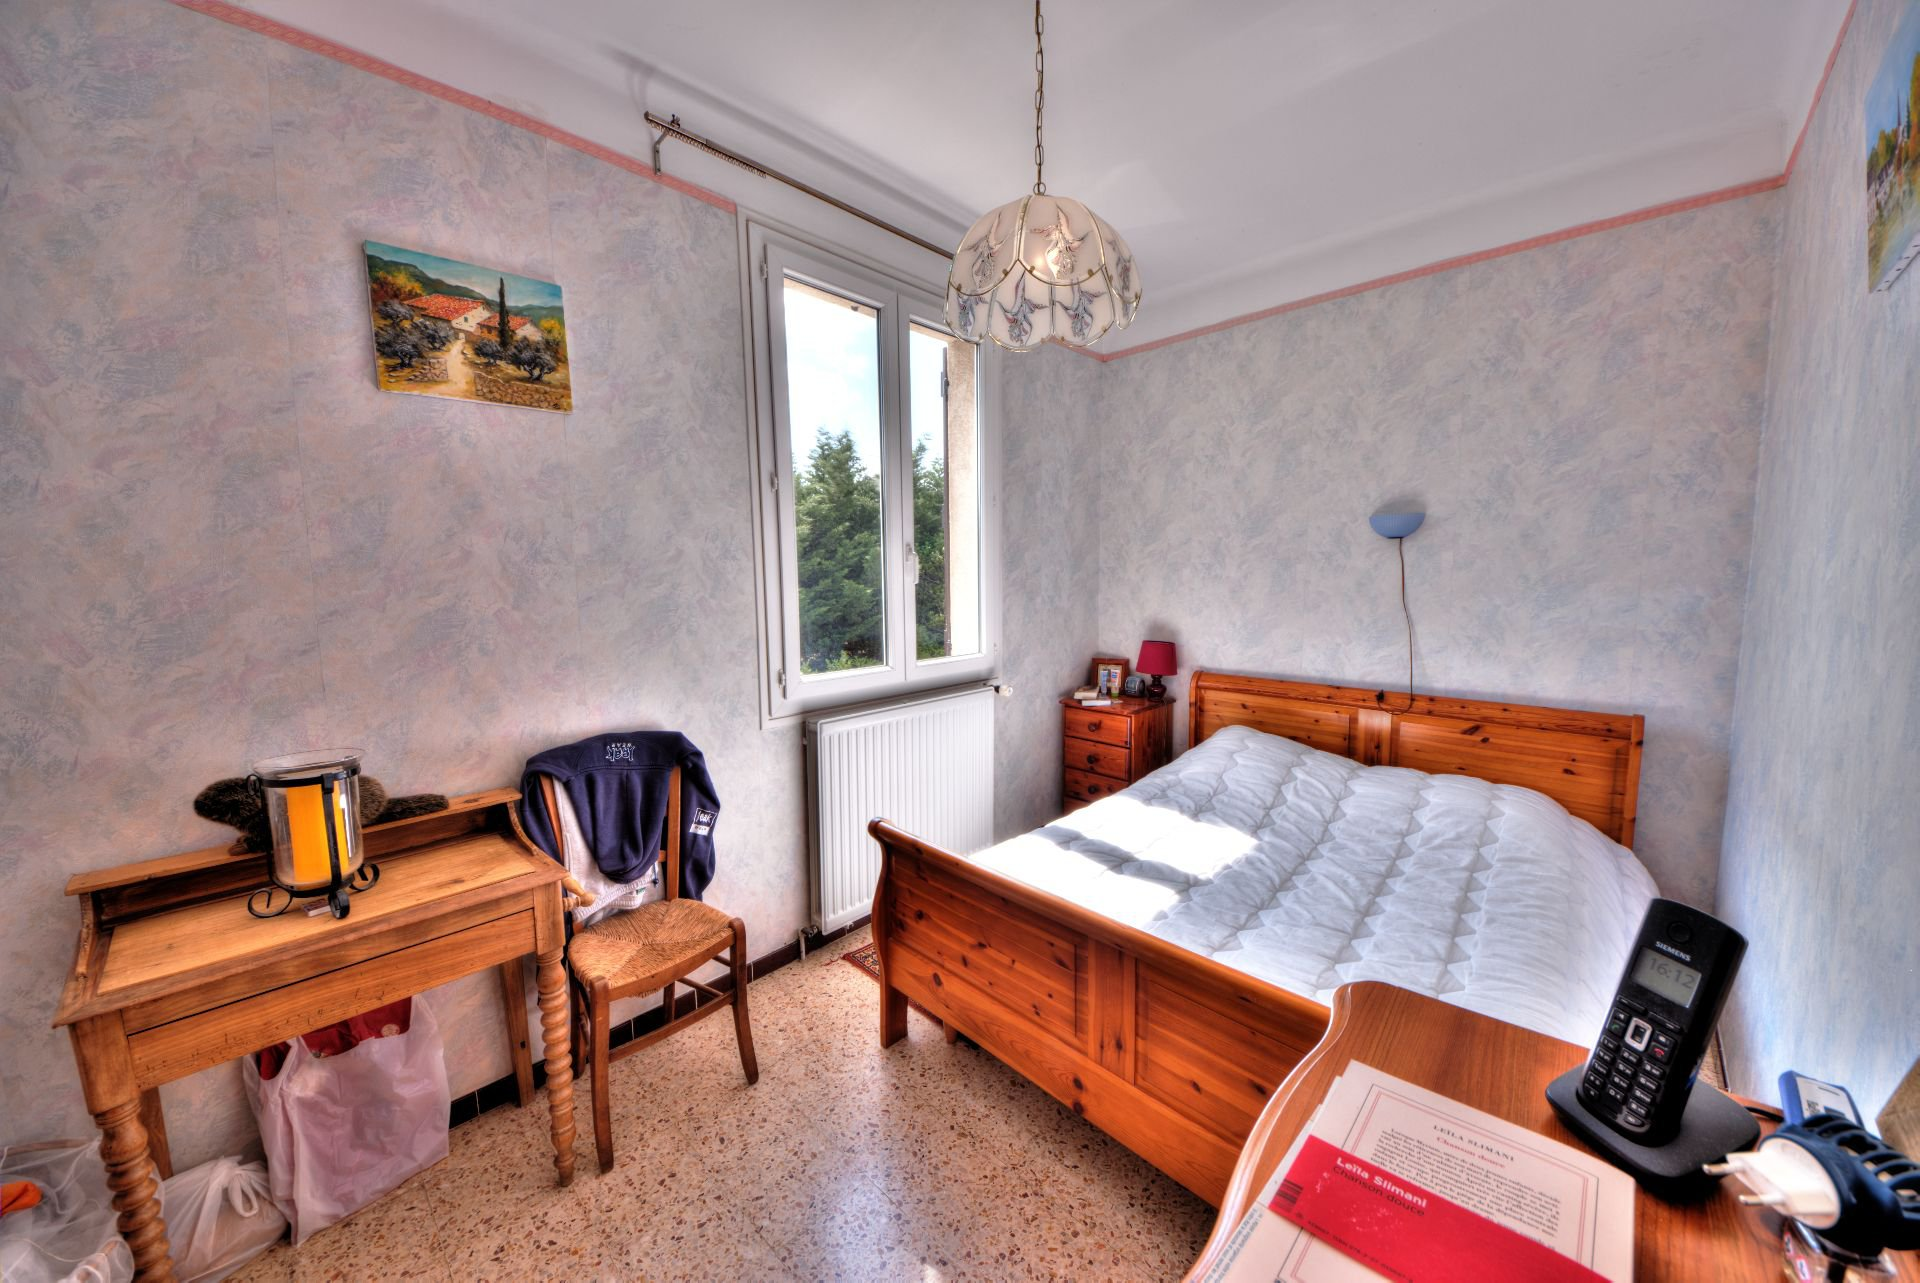 Bedroom 1 of the House raised one floor on garden level, plot of 5000 m² divisible, Aups, Provence, Verdon